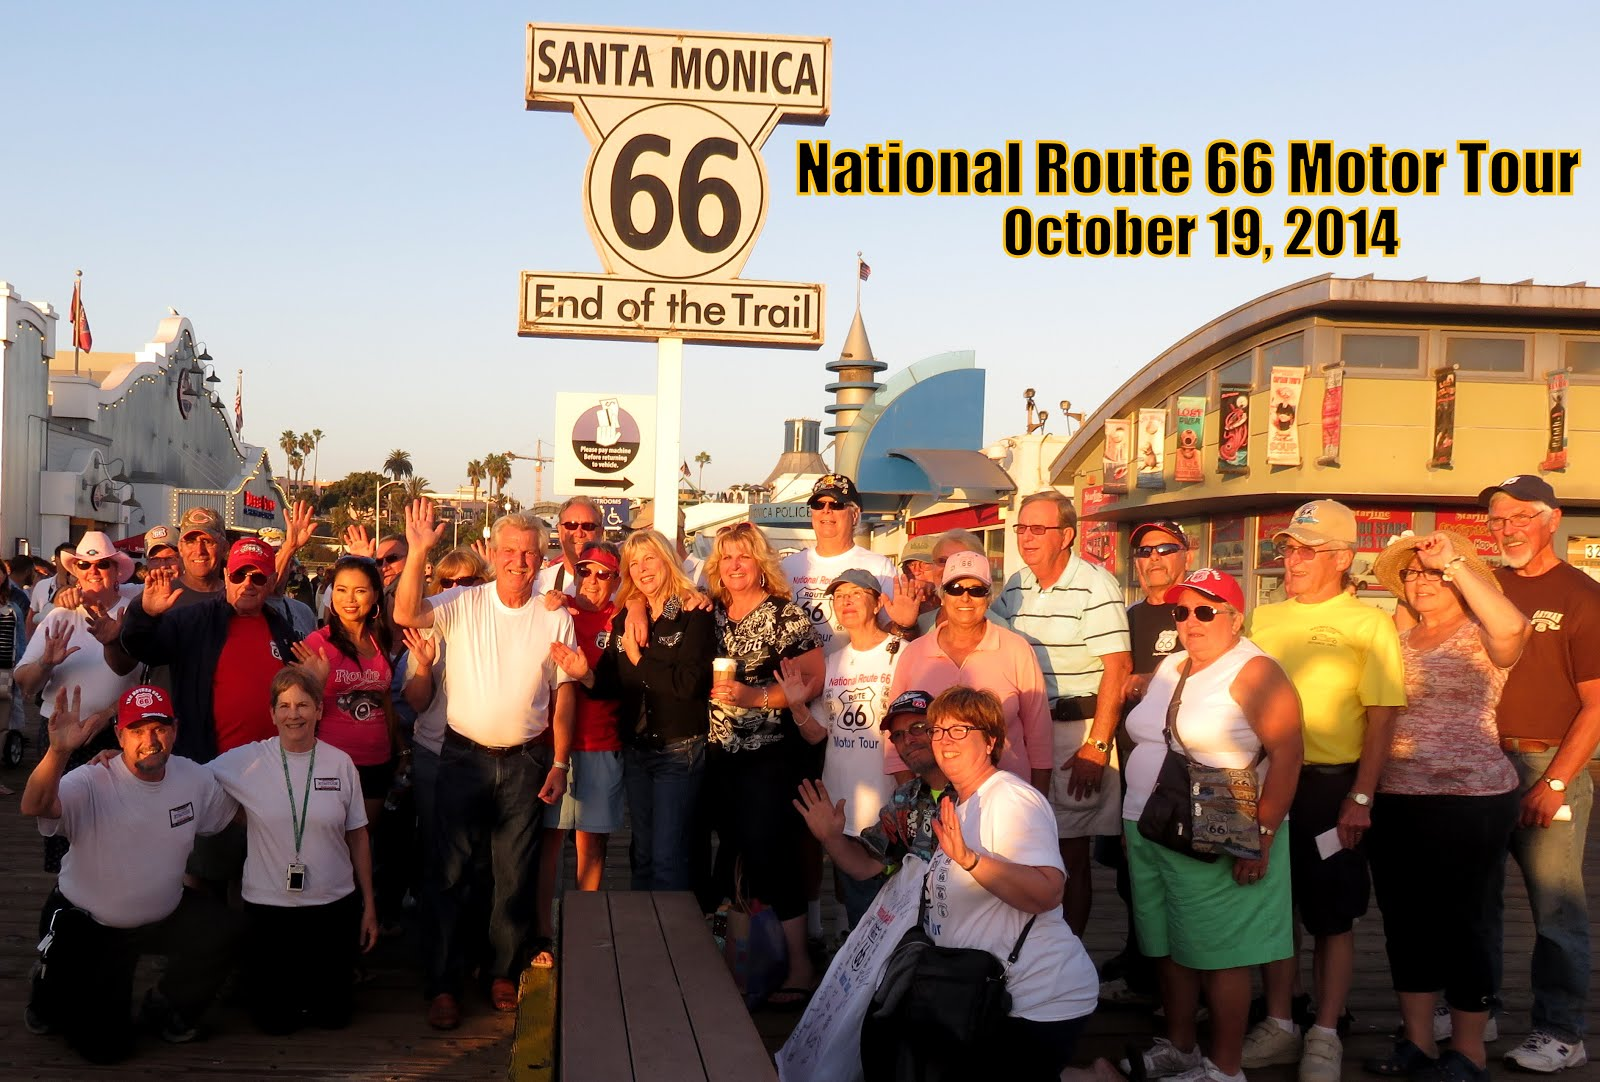 National Route 66 Motor Tour Web-Blog (CLICK ON PHOTO)